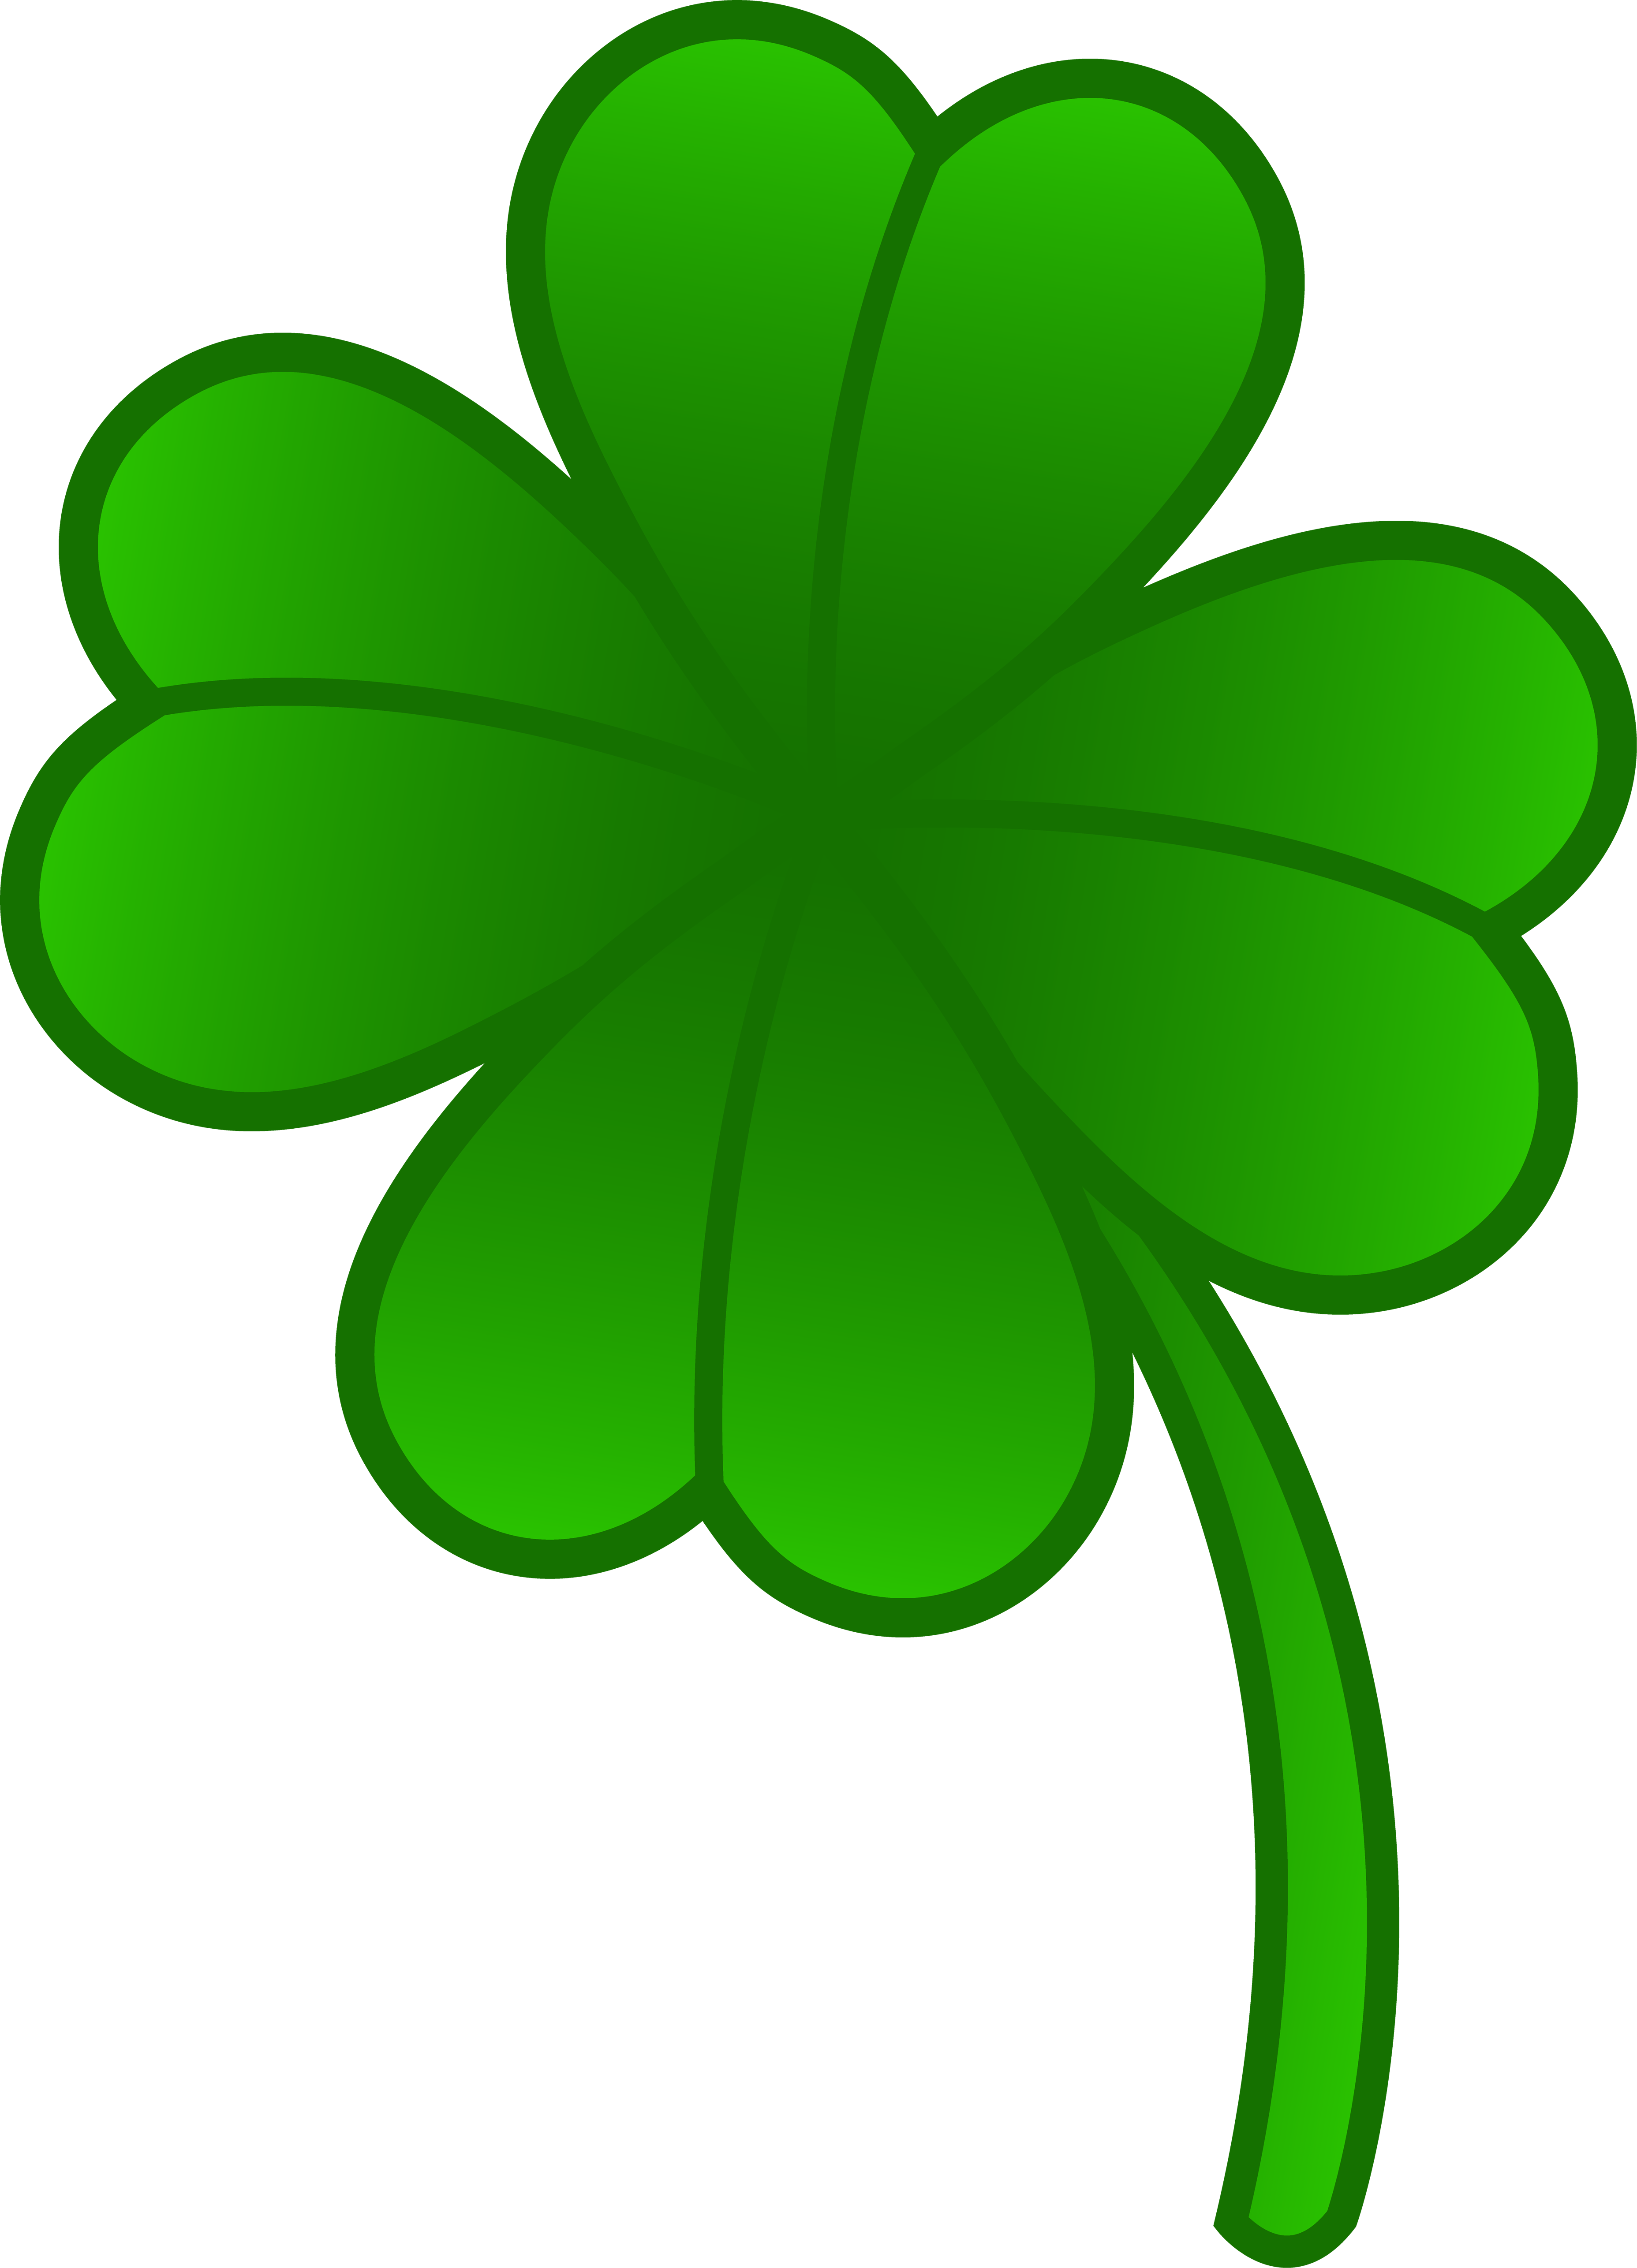 Clover clipart clear background. Png icon web icons